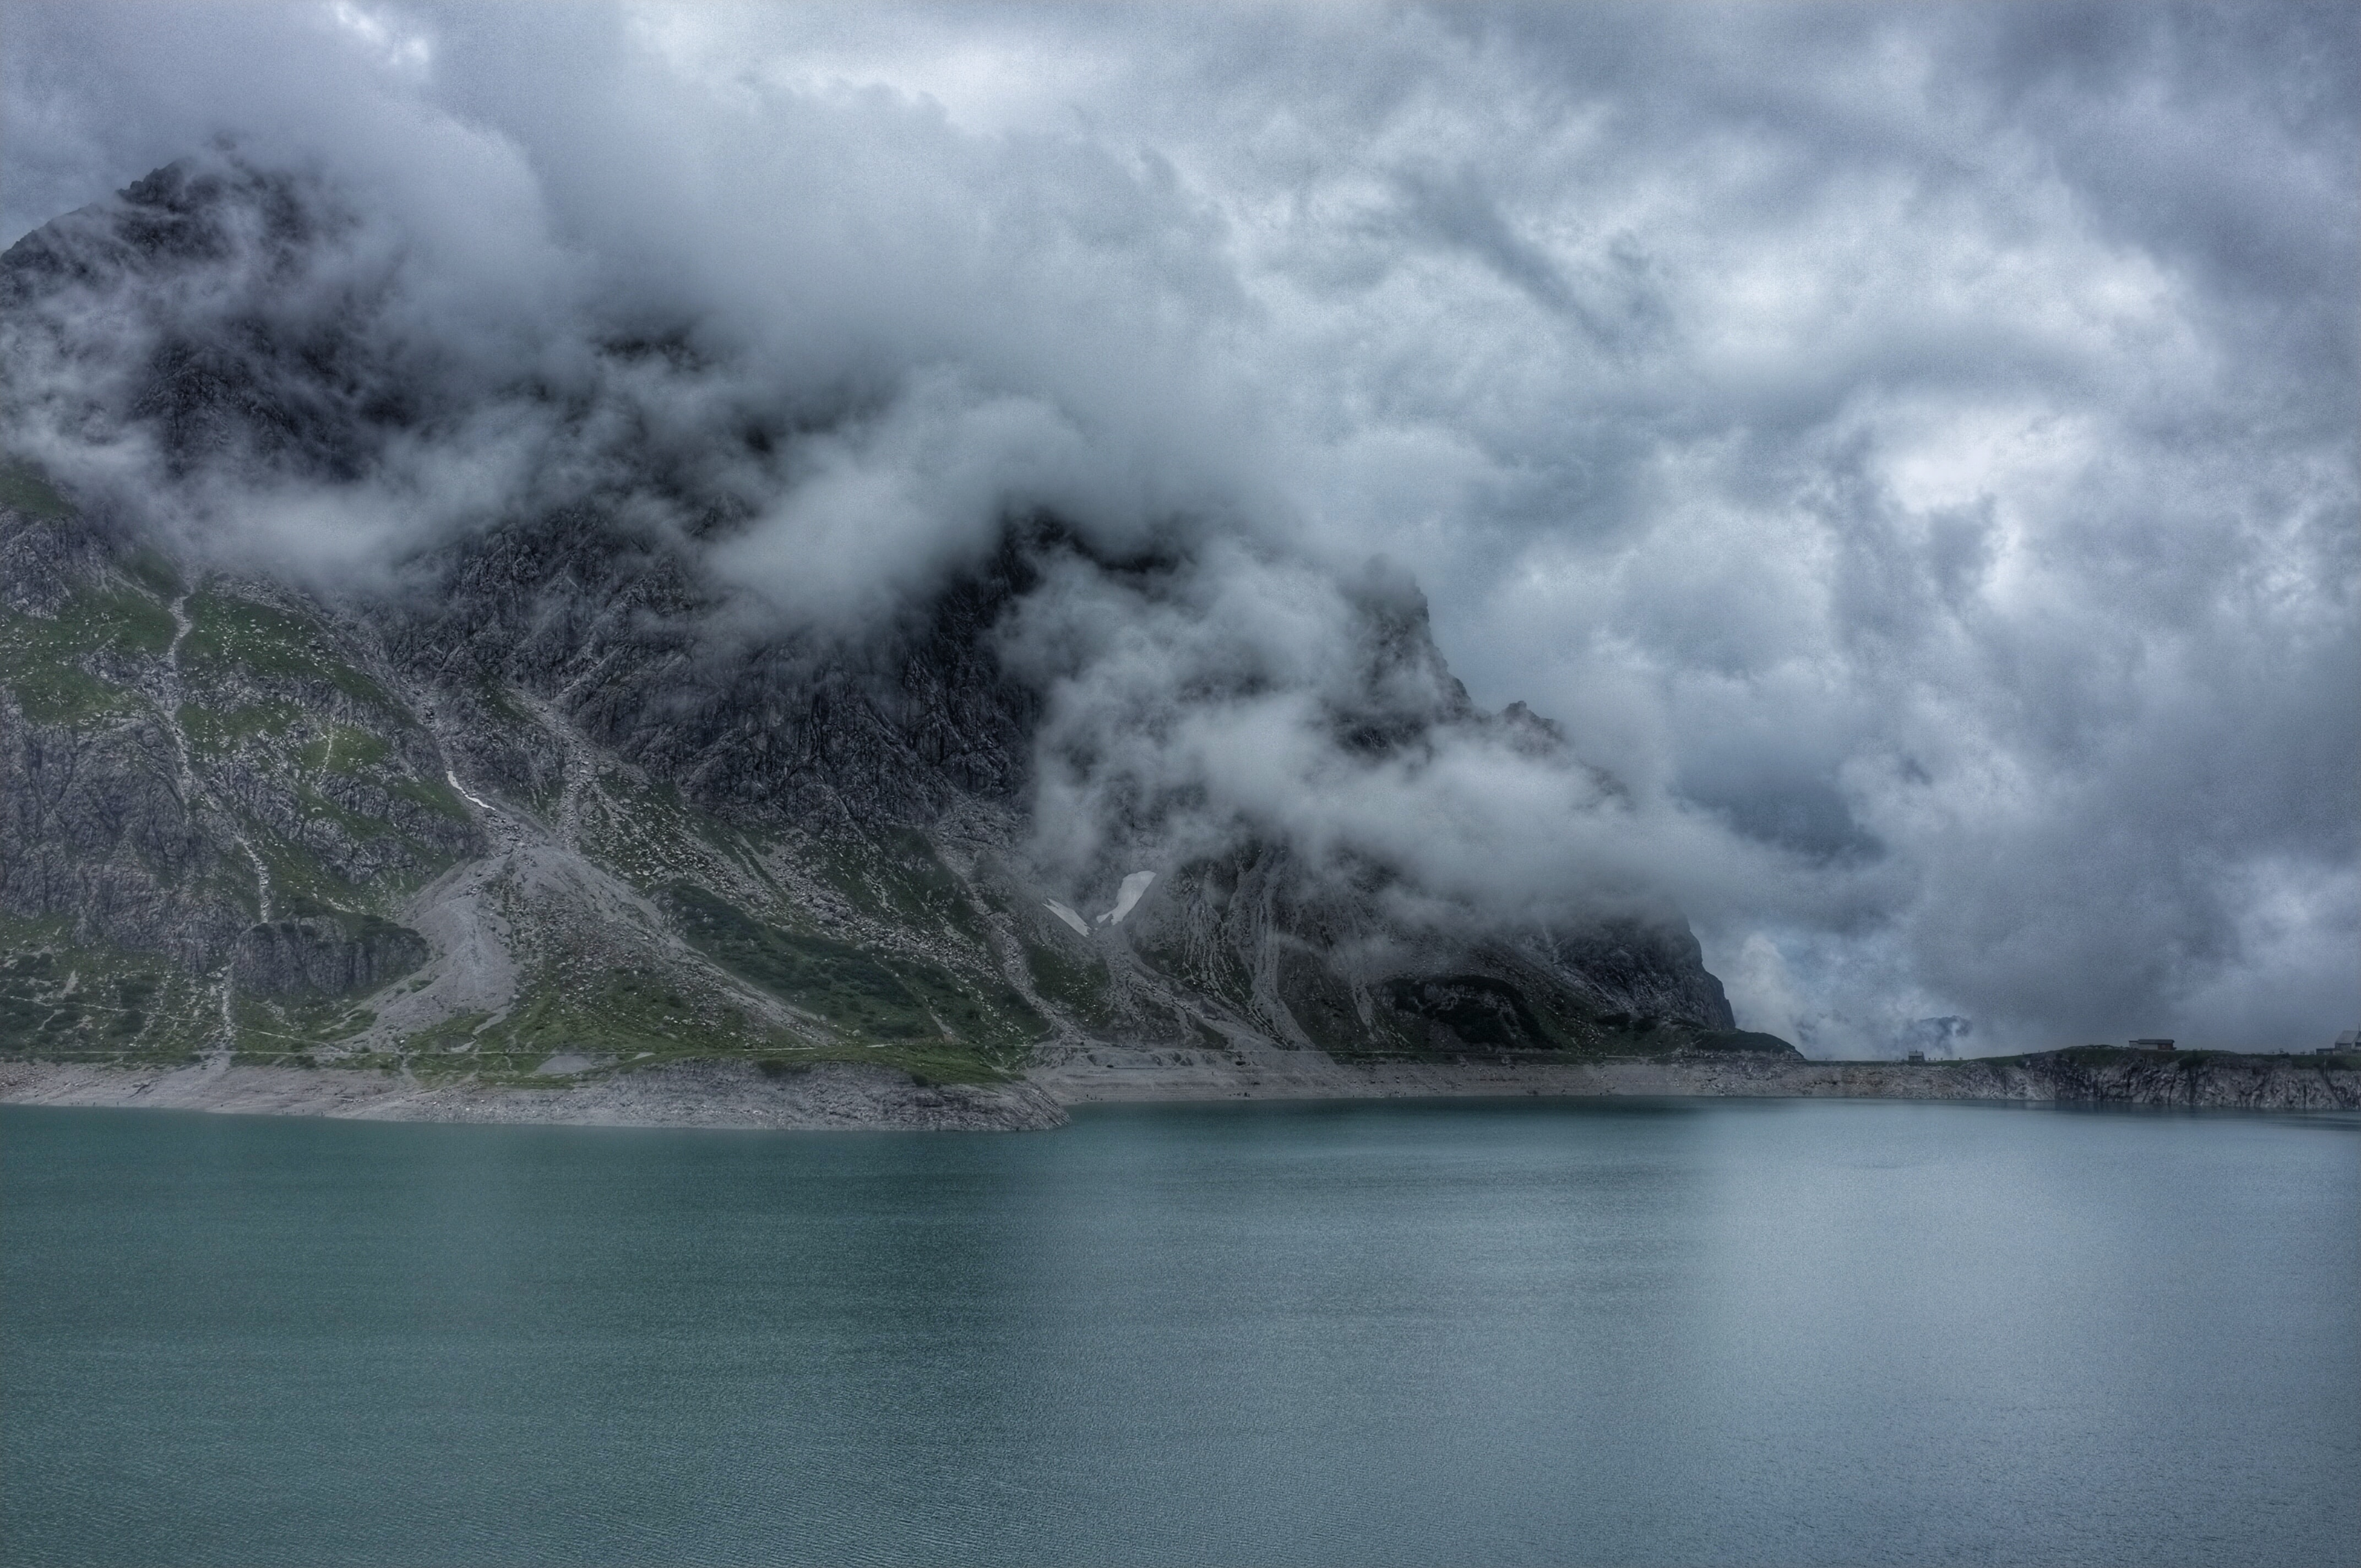 Fog rolls in on grassy mountains by a still lake in Lünersee